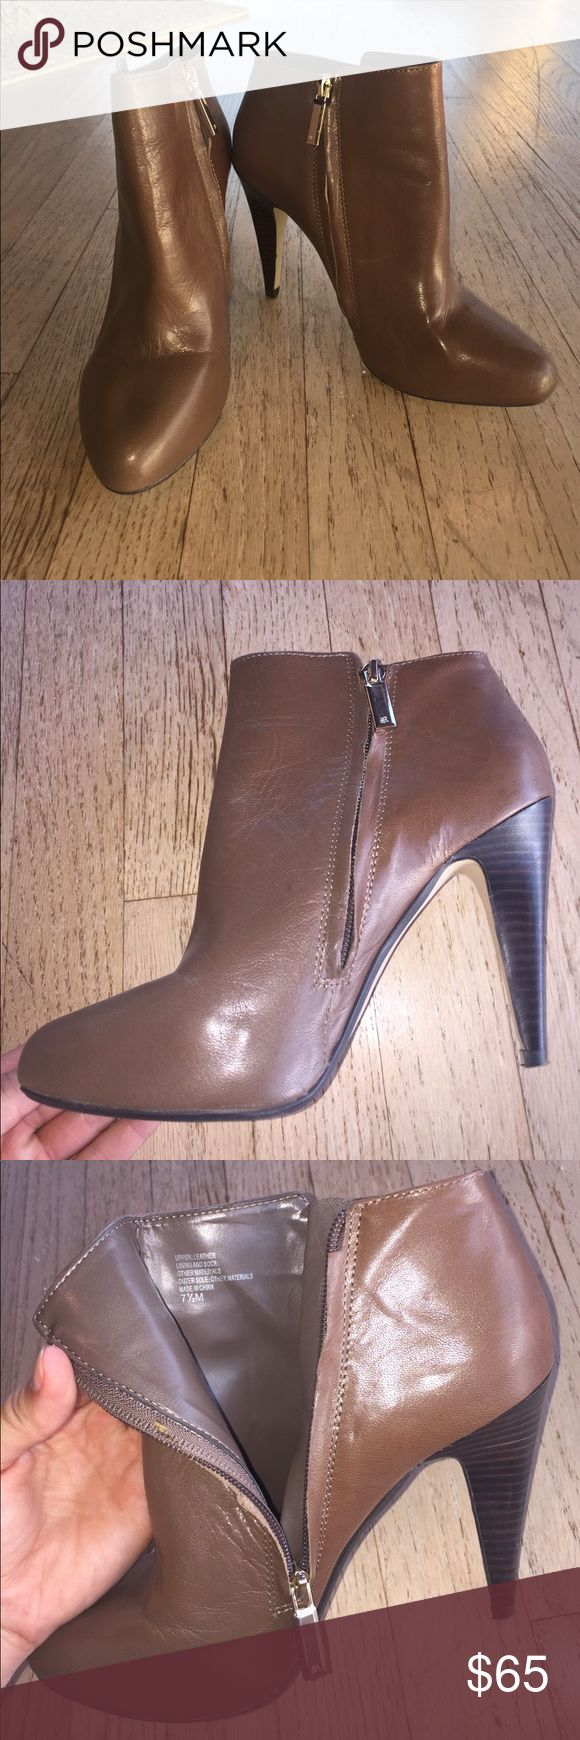 Banana Republic Leather booties Size 7.5  Pretty Walnut brown leather booties from BR Banana Republic Shoes Ankle Boots & Booties